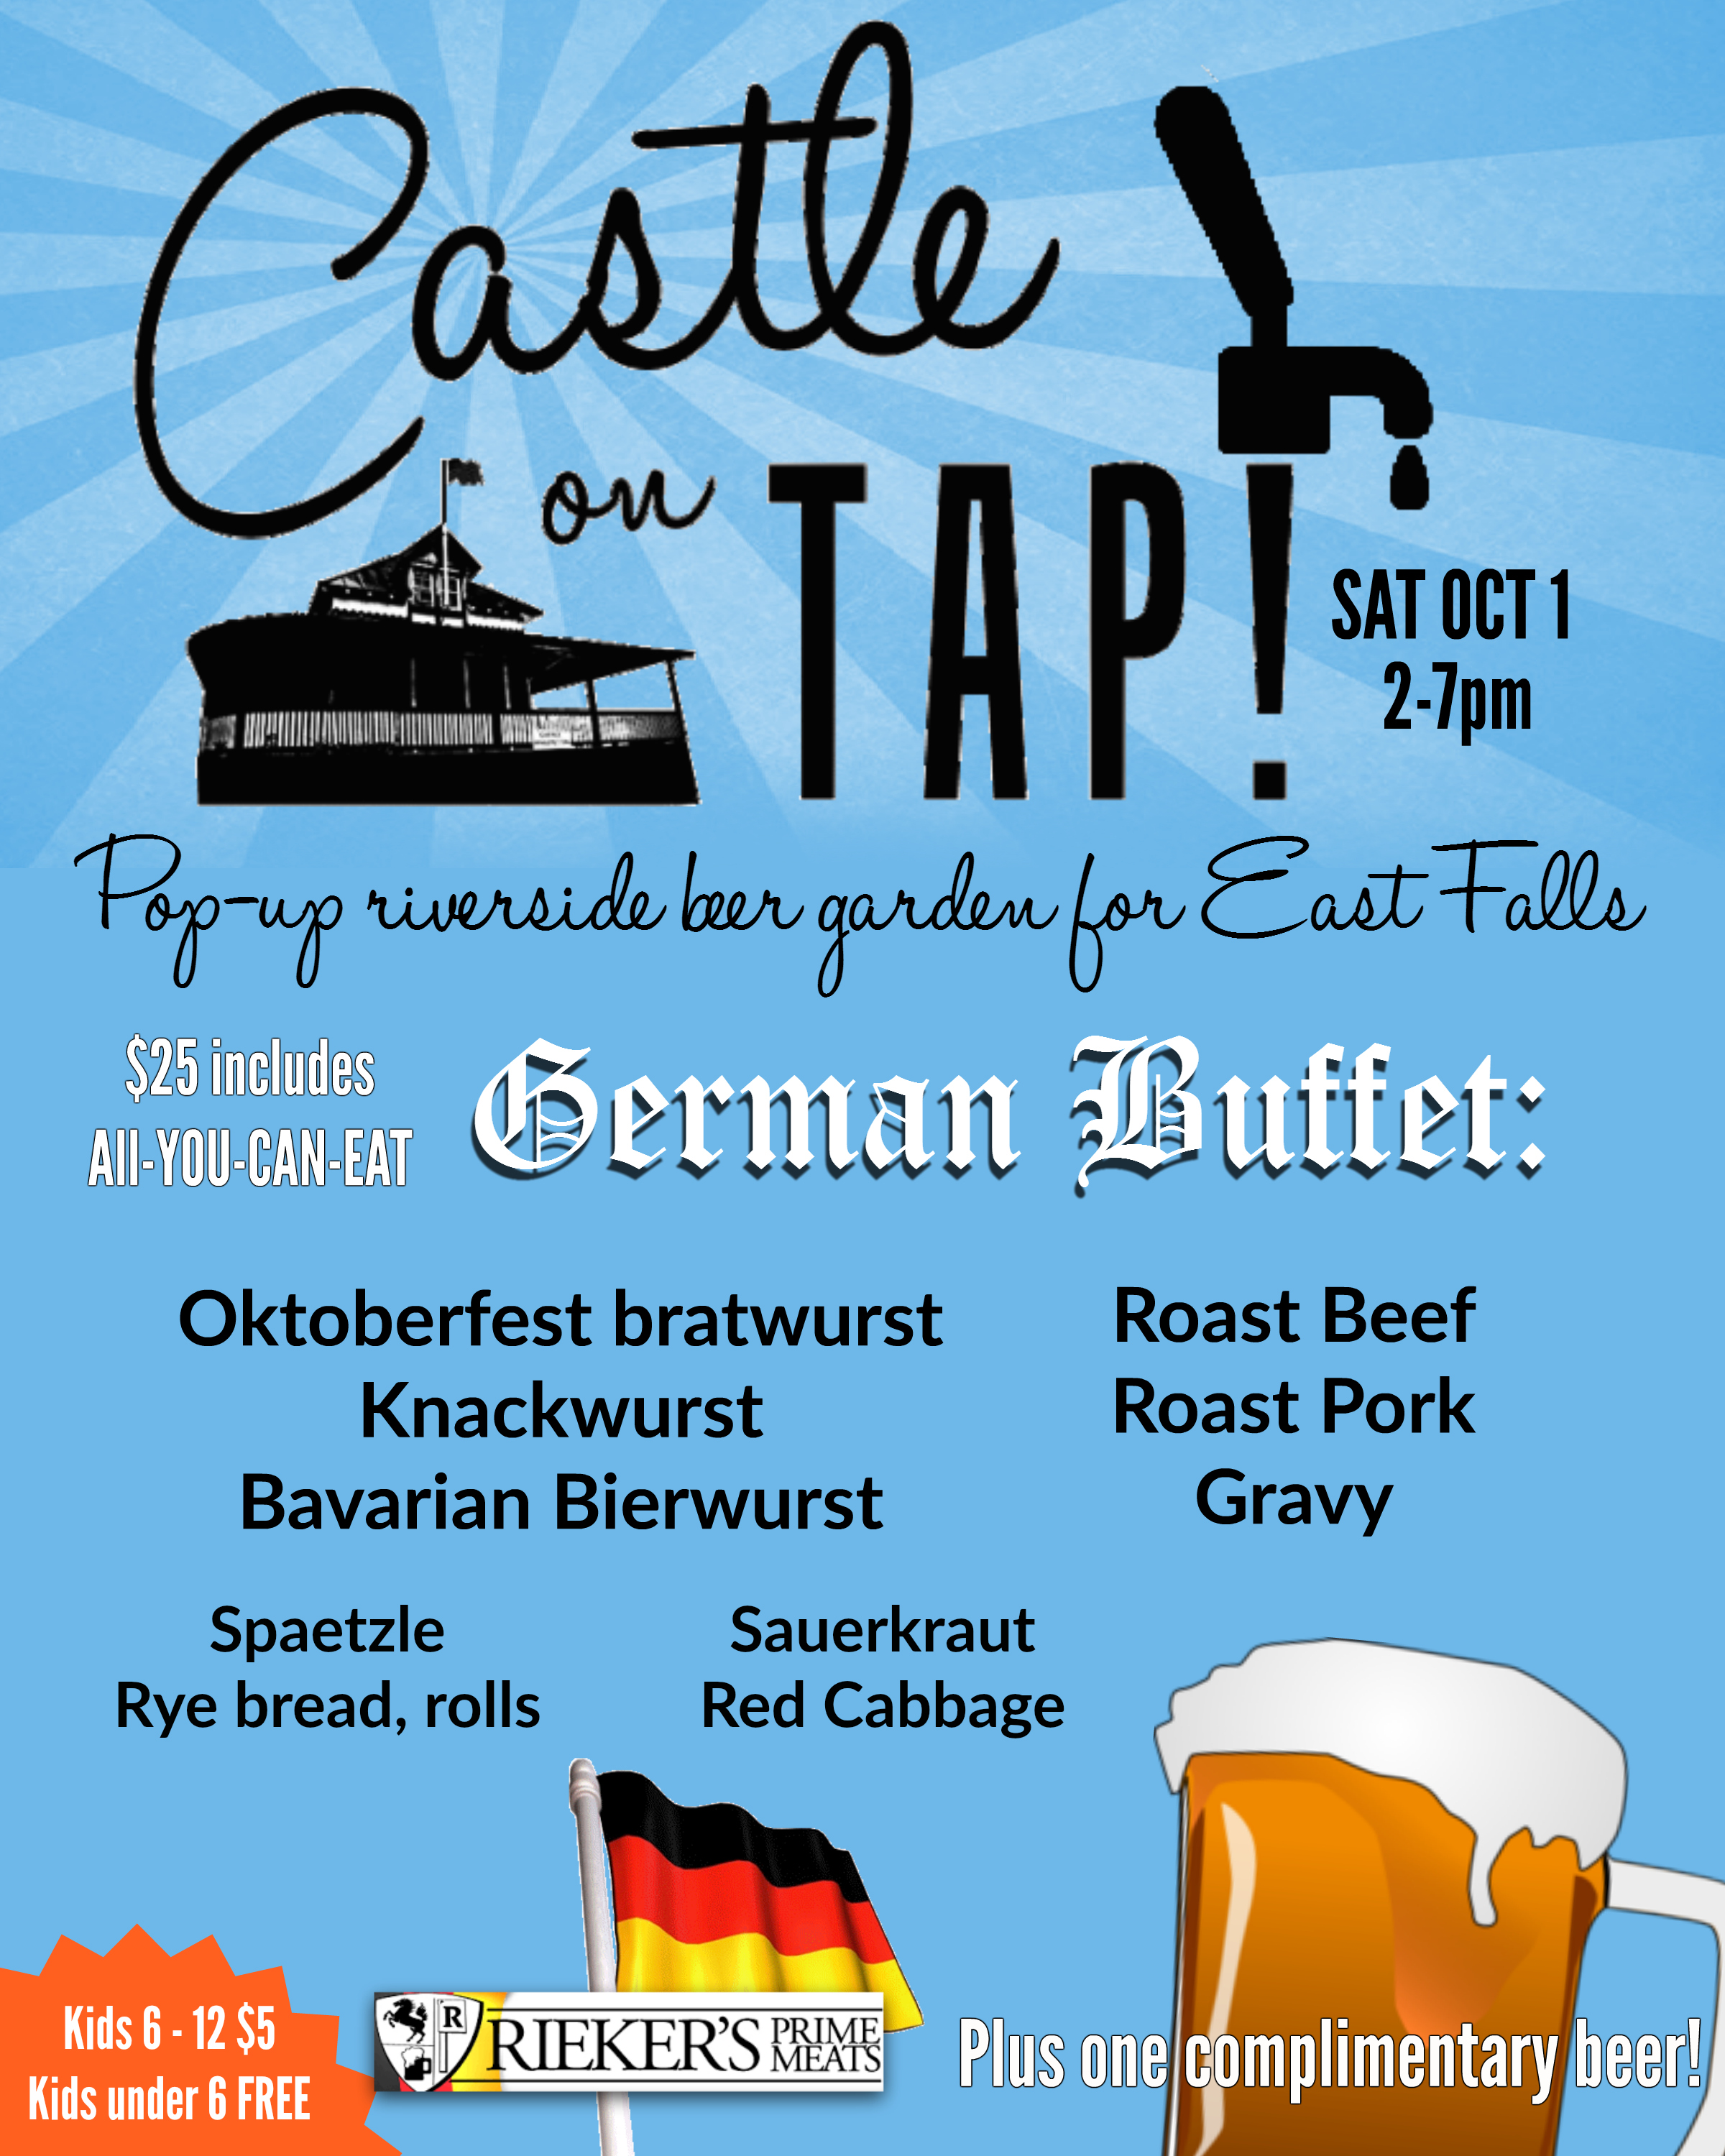 eastfallslocal-blue-retro-oktoberfest-buffet-date